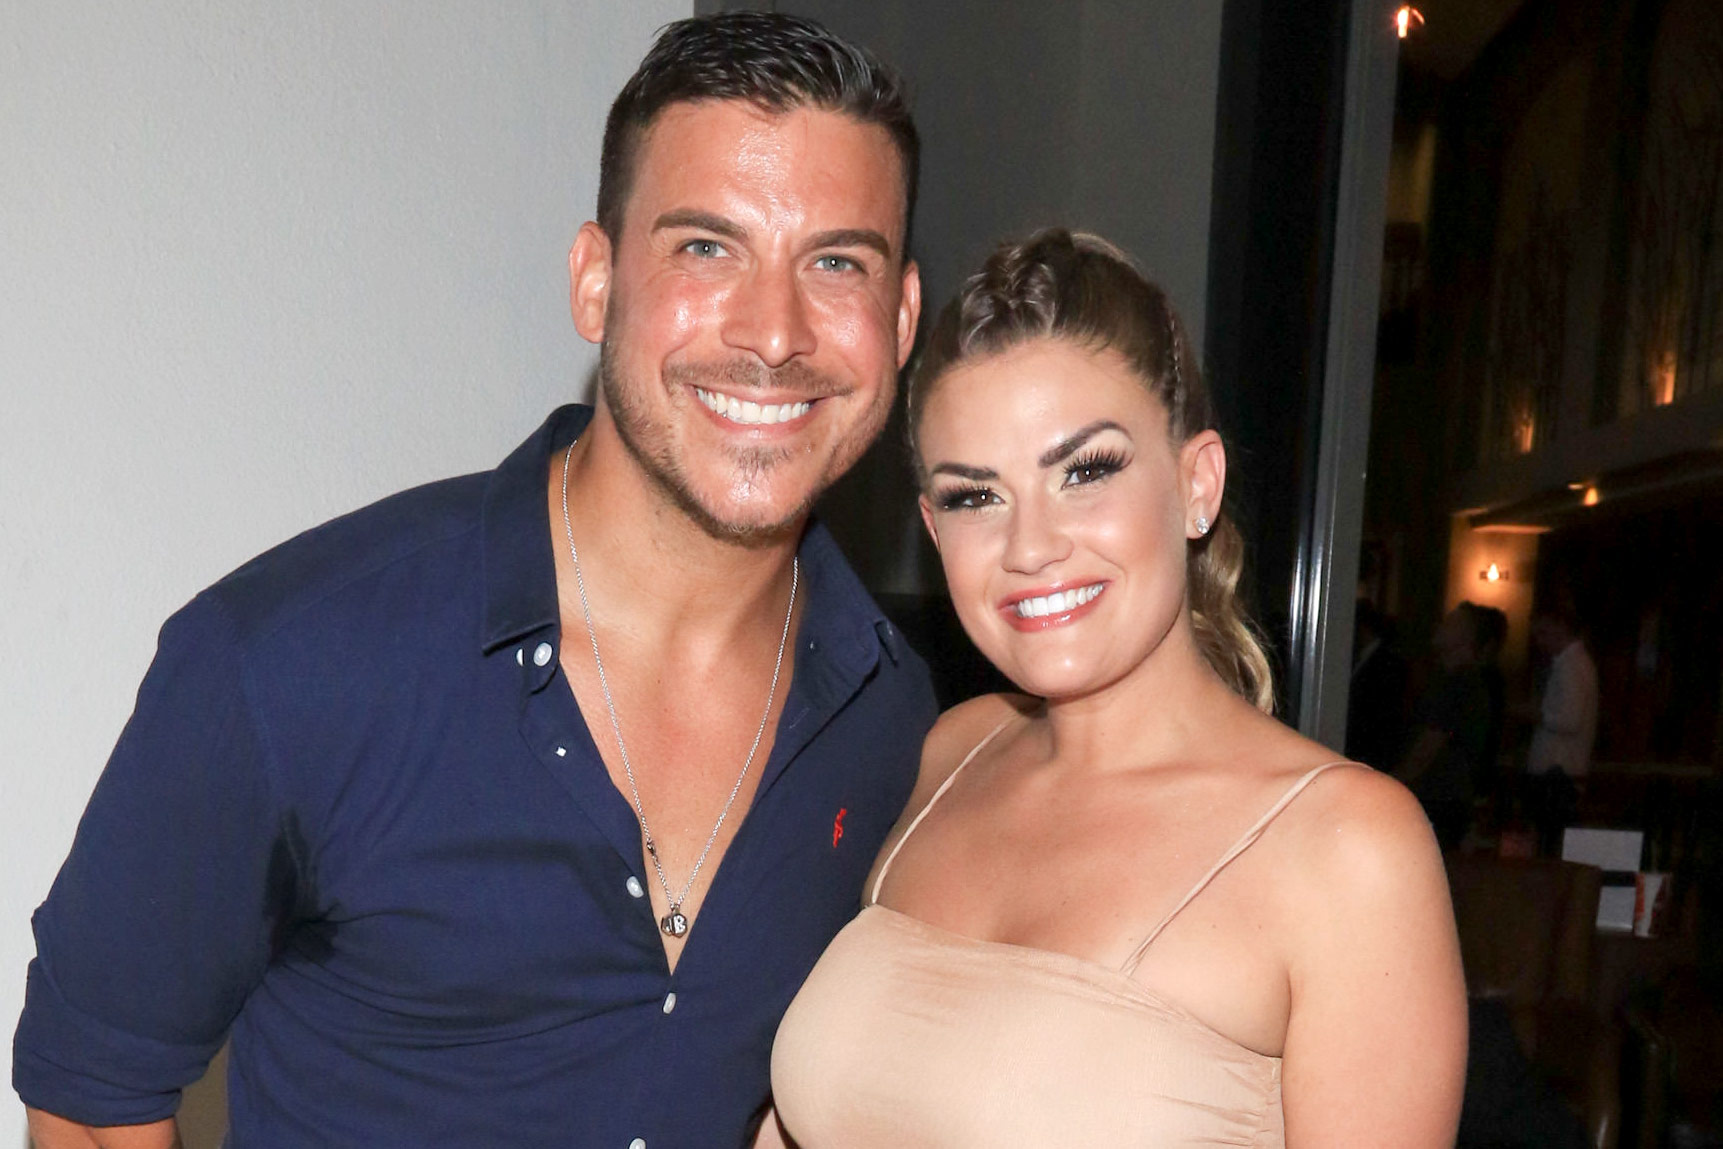 brittany-cartwright-and-jax-taylor-having-a-boy-or-a-girl-check-out-their-official-announcements